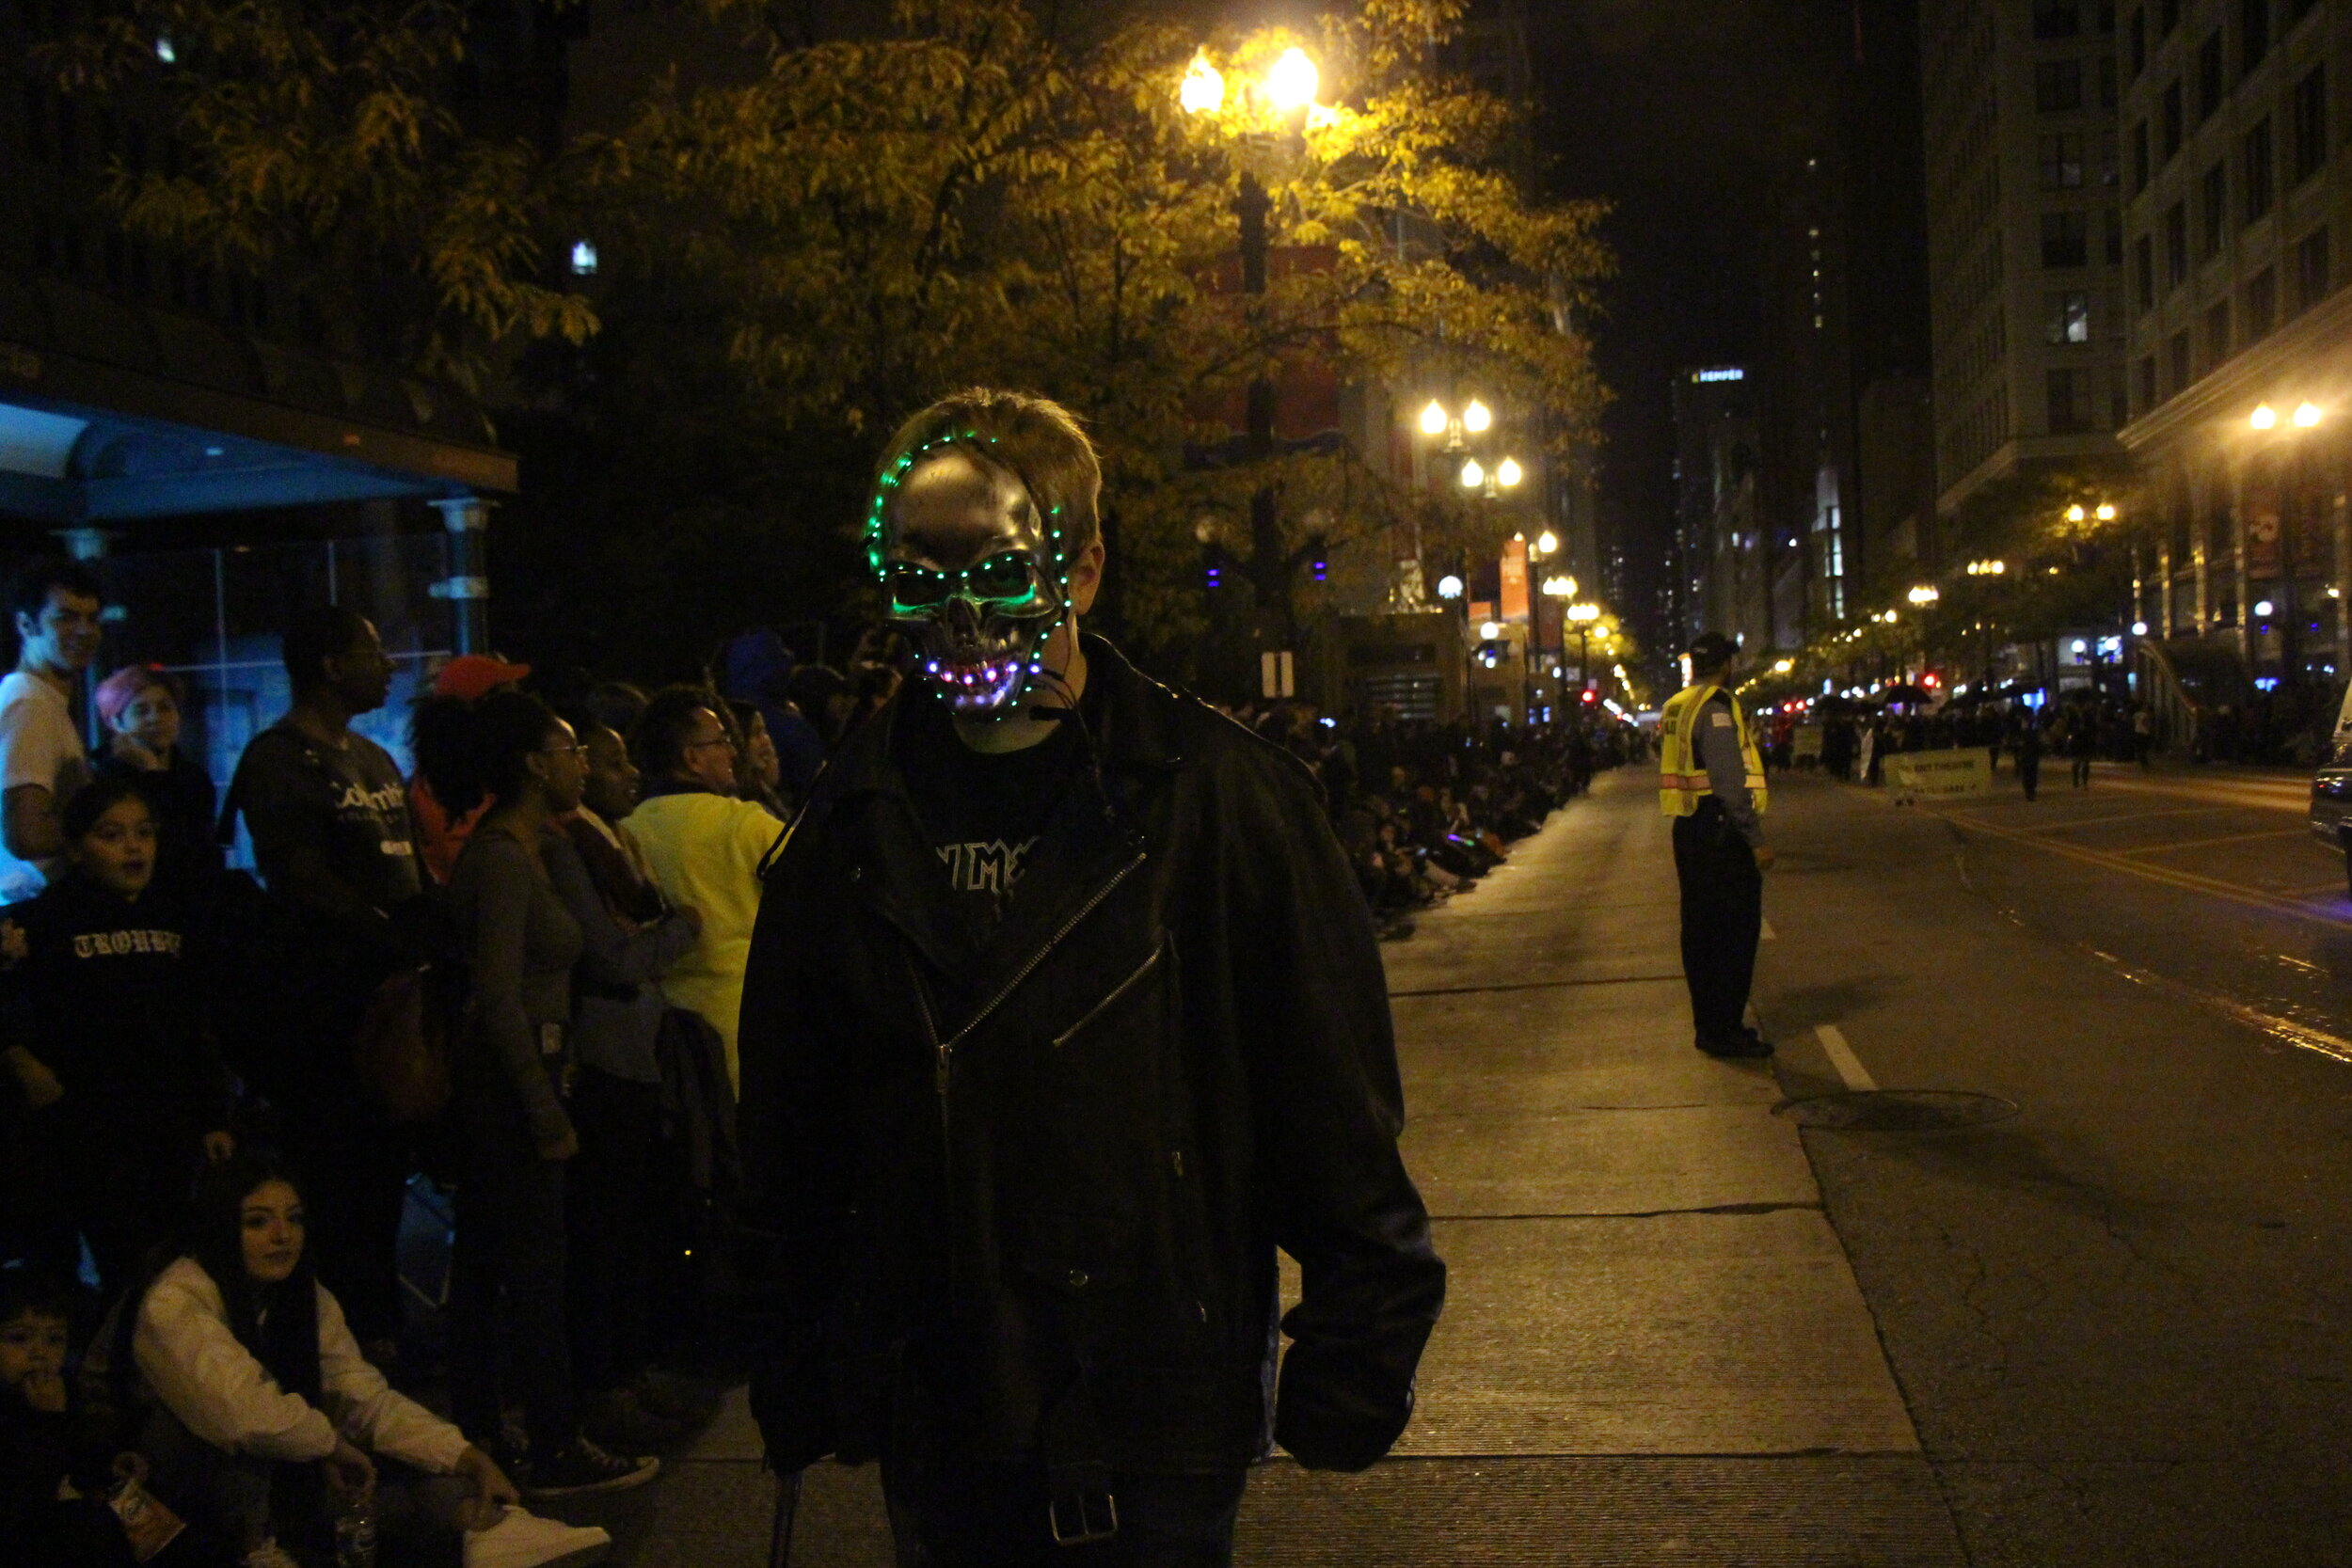 Attendee costume stands out from the crowd wearing a glowing purple and green mask.